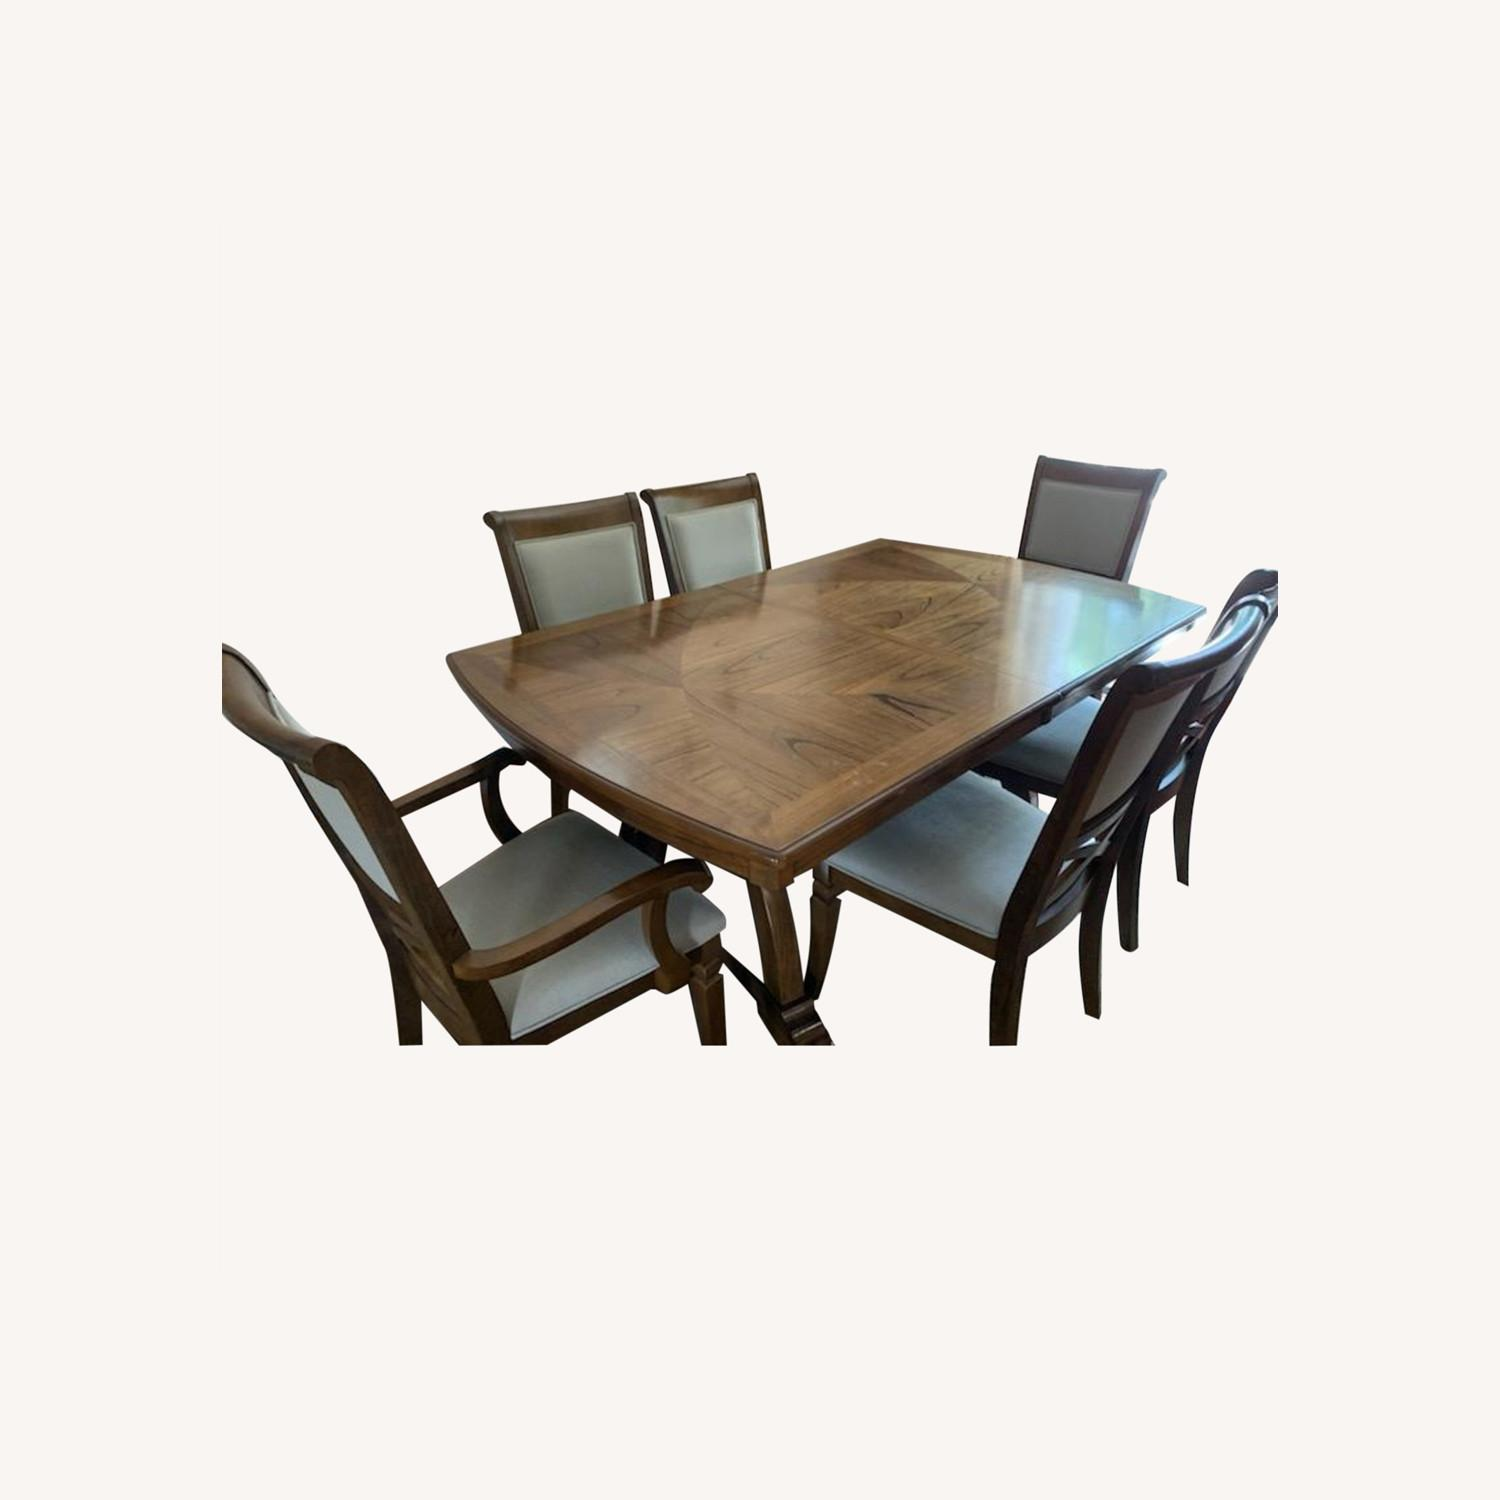 Raymour & Flanigan Dining Table set with 6 chairs - image-0